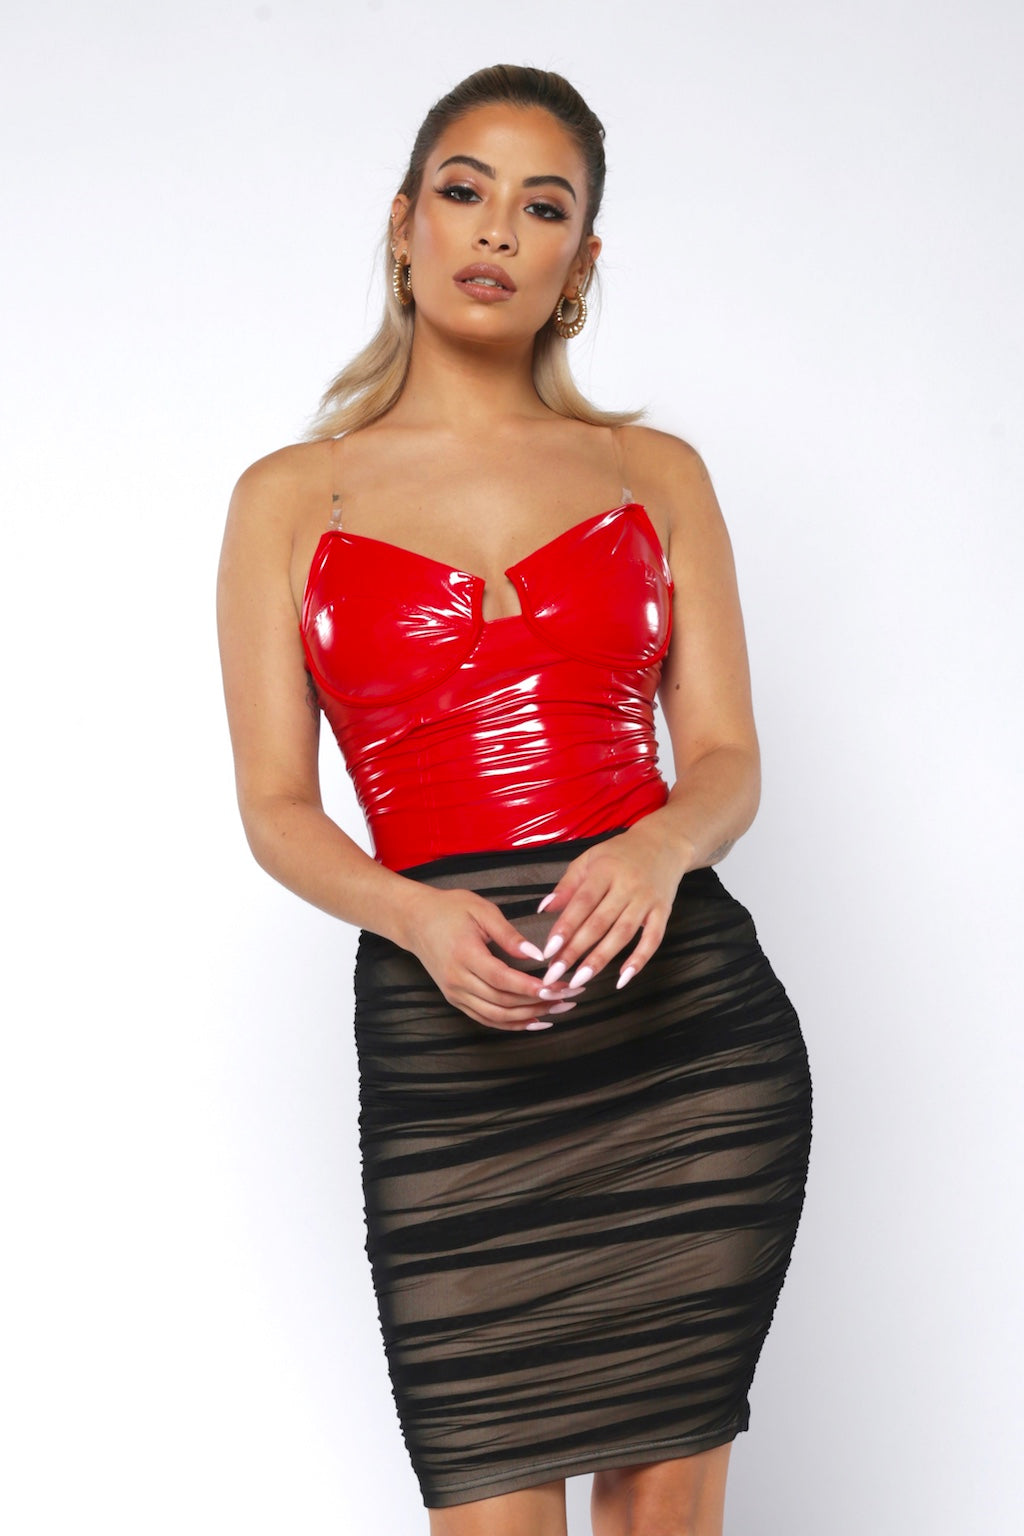 Red Patent Leather Bodysuit